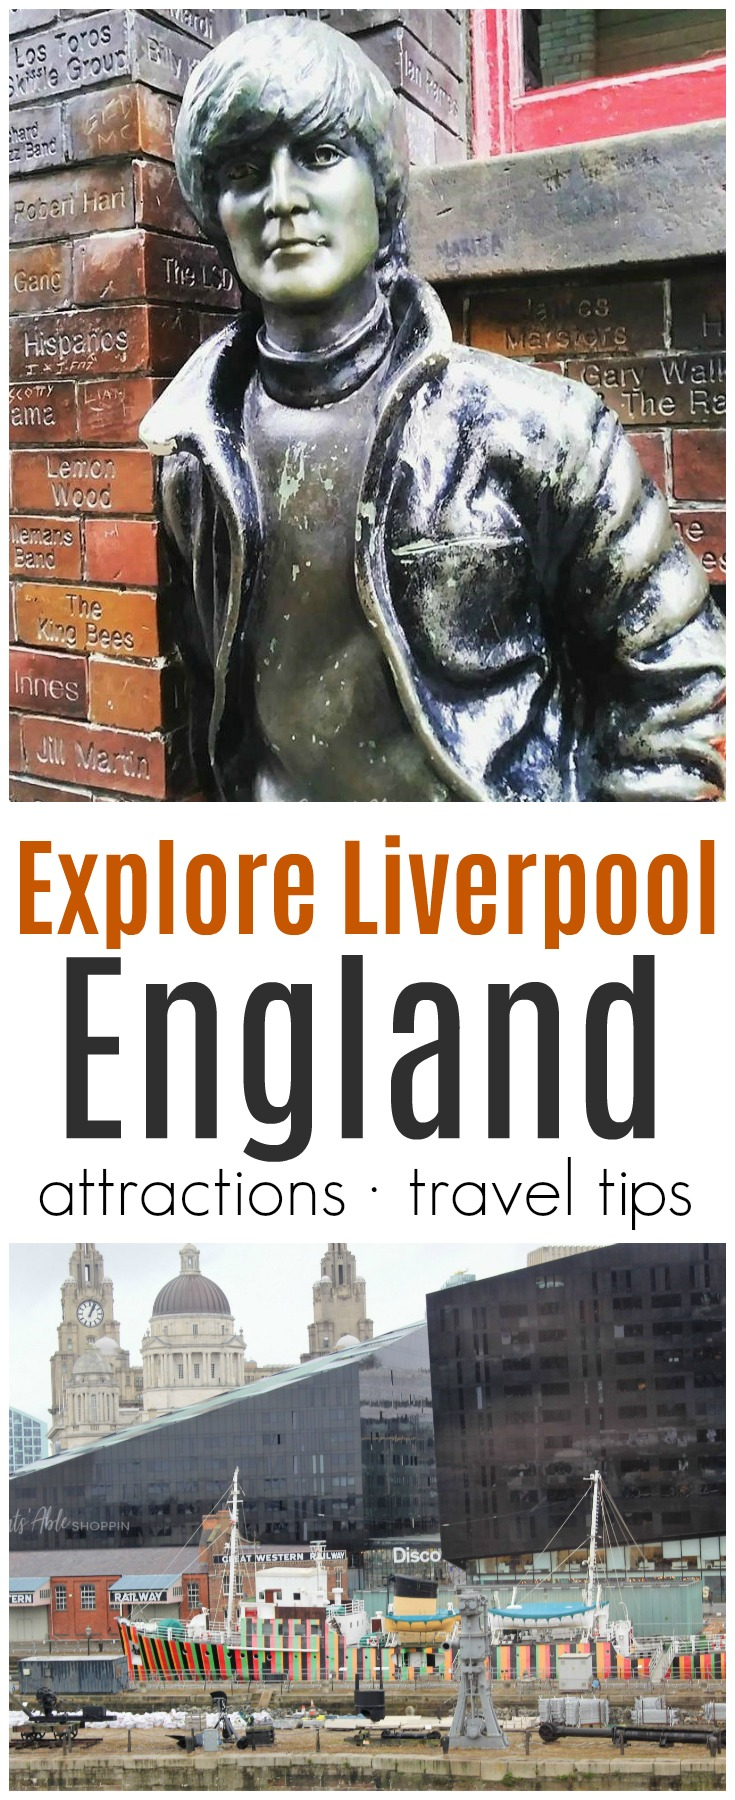 Explore Liverpool, England! Beatles fans flock to this beautiful city for its musical culture and nightlife - there's so much to see and do!  #Liverpool #England #UnitedKingdom  #travel #traveltips #getoutside